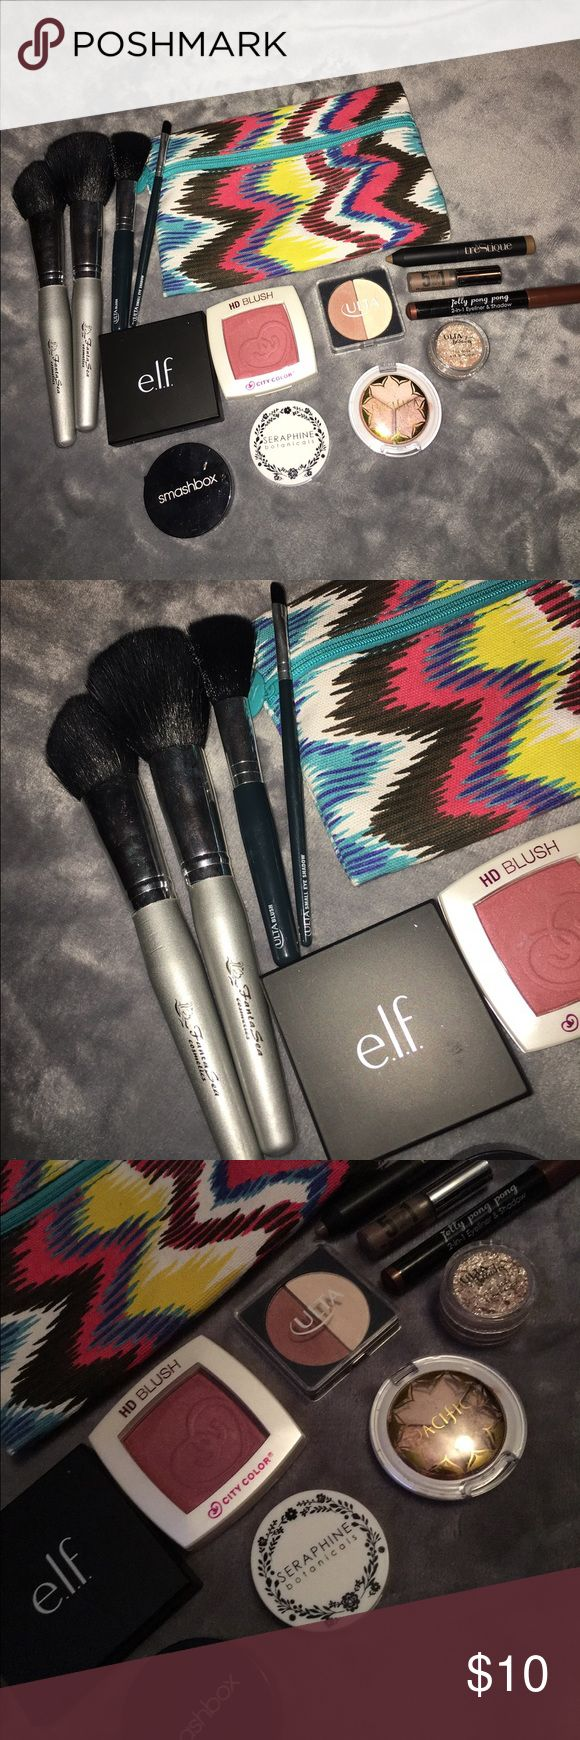 Eye shadows & blushes. Eye shadows, blushes, Liquid eye shadows, brushes. All different brands: elf, Pacifica, Ulta, Smashbox, FantaSea Brushes, baremineral mini liquid eyeshadow, JellyPongPong & more. SOLD AS IS. never used. Swatched for reviews only. Travel sizes and full sizes. ELF Makeup Eyeshadow